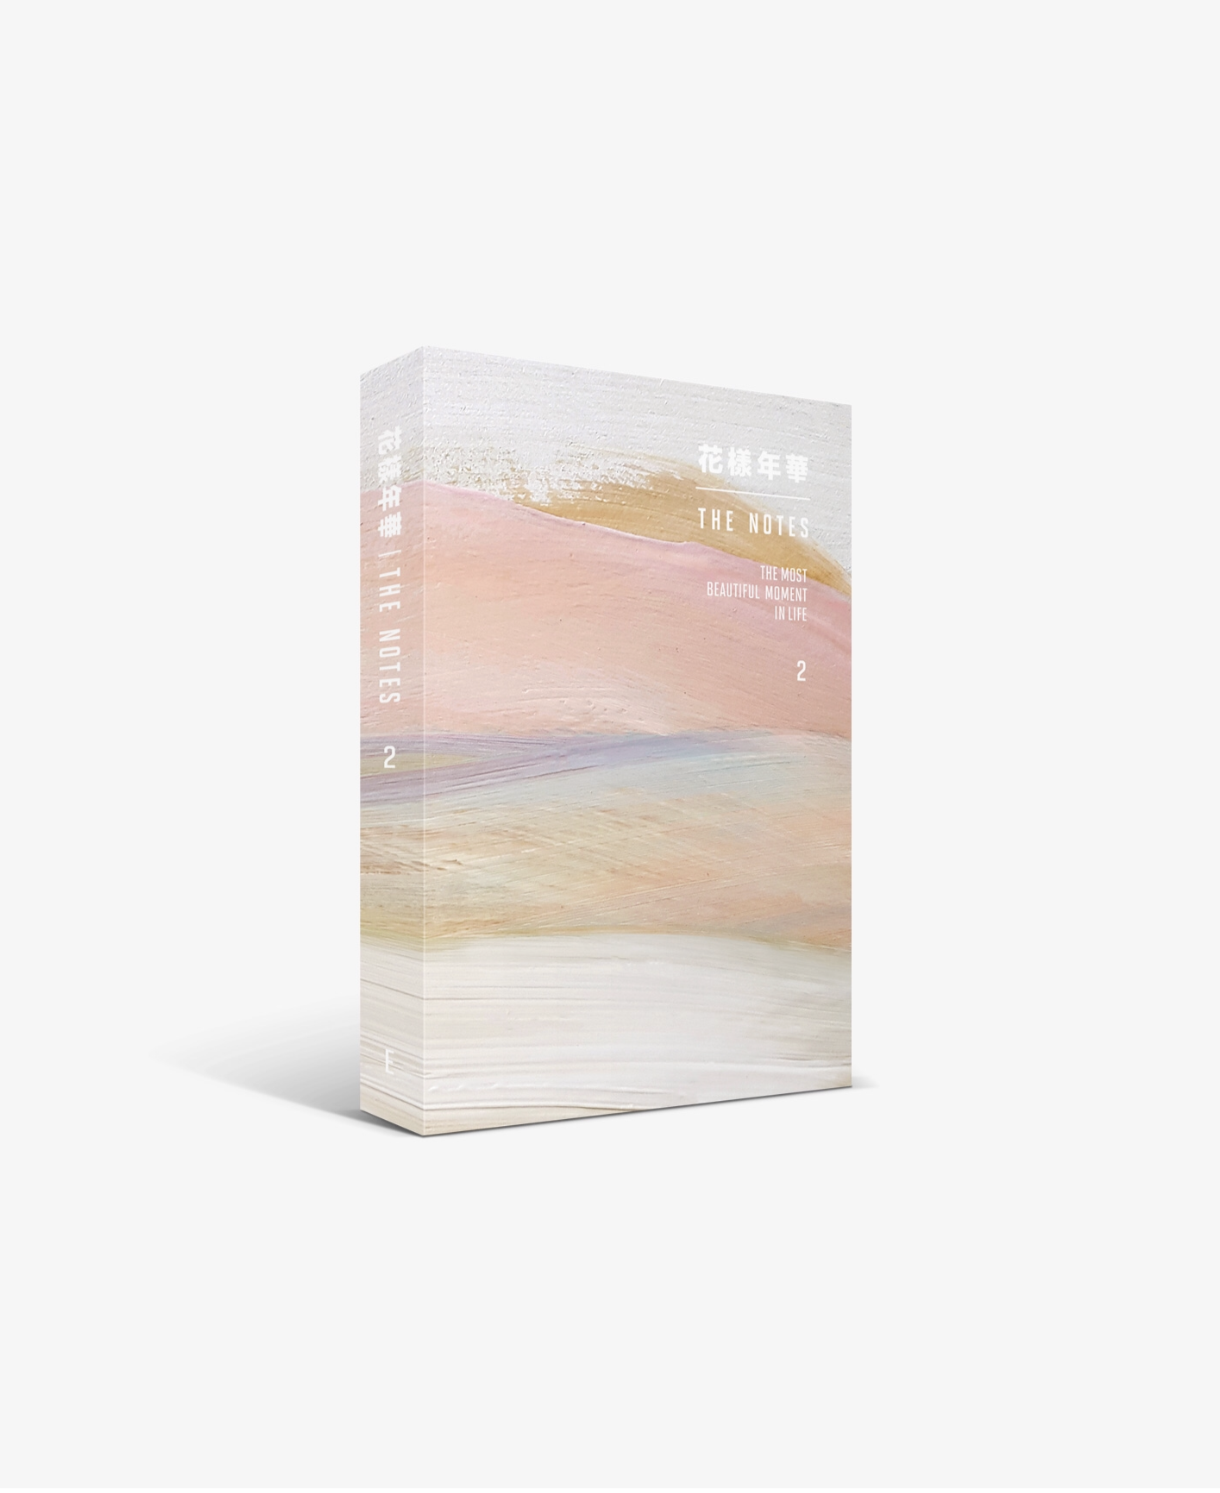 SOKOLLAB UK BTS HYYH THE NOTES 2 THE MOST BEAUTIFUL MOMENTS IN LIFE